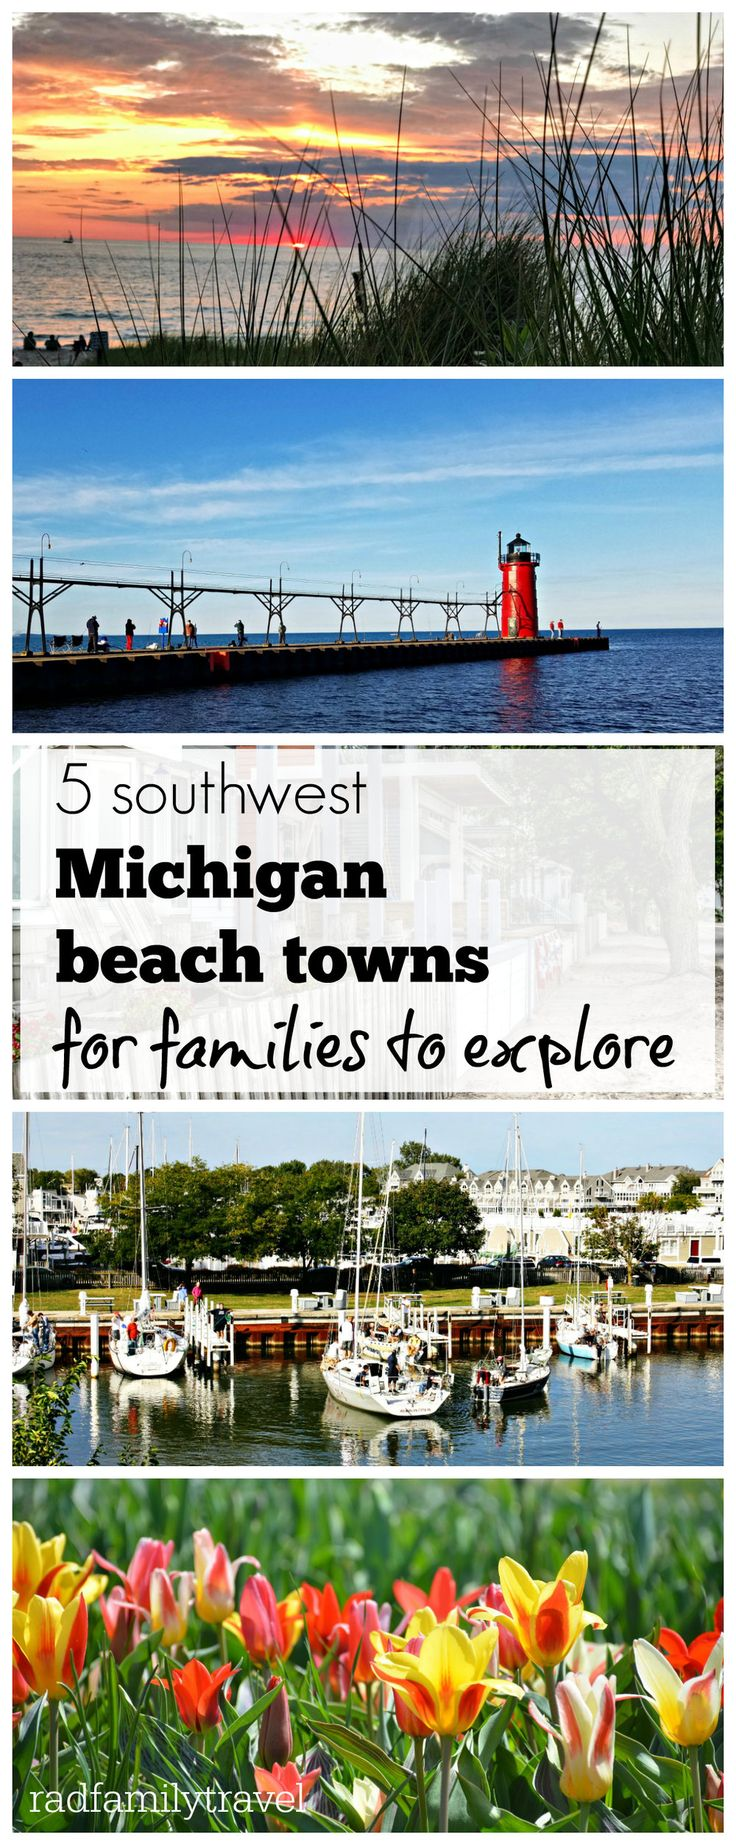 5 Michigan beach towns for families who like to explore. Fantastic things to do along Lake Michigan; discover beaches, playgrounds, shopping, eating and more!